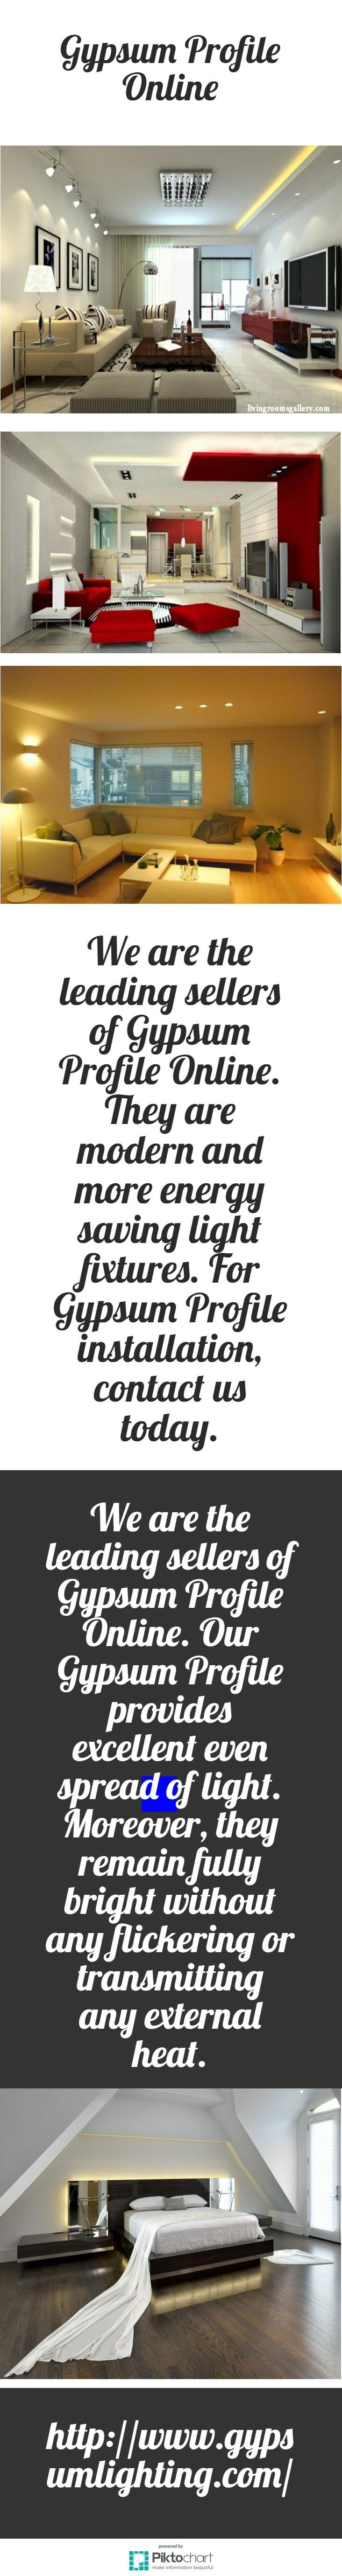 We are the leading sellers of Gypsum Profile Online. They are modern and more energy saving light fixtures. For Gypsum Profile installation, contact us today.  http://www.gypsumlighting.com/